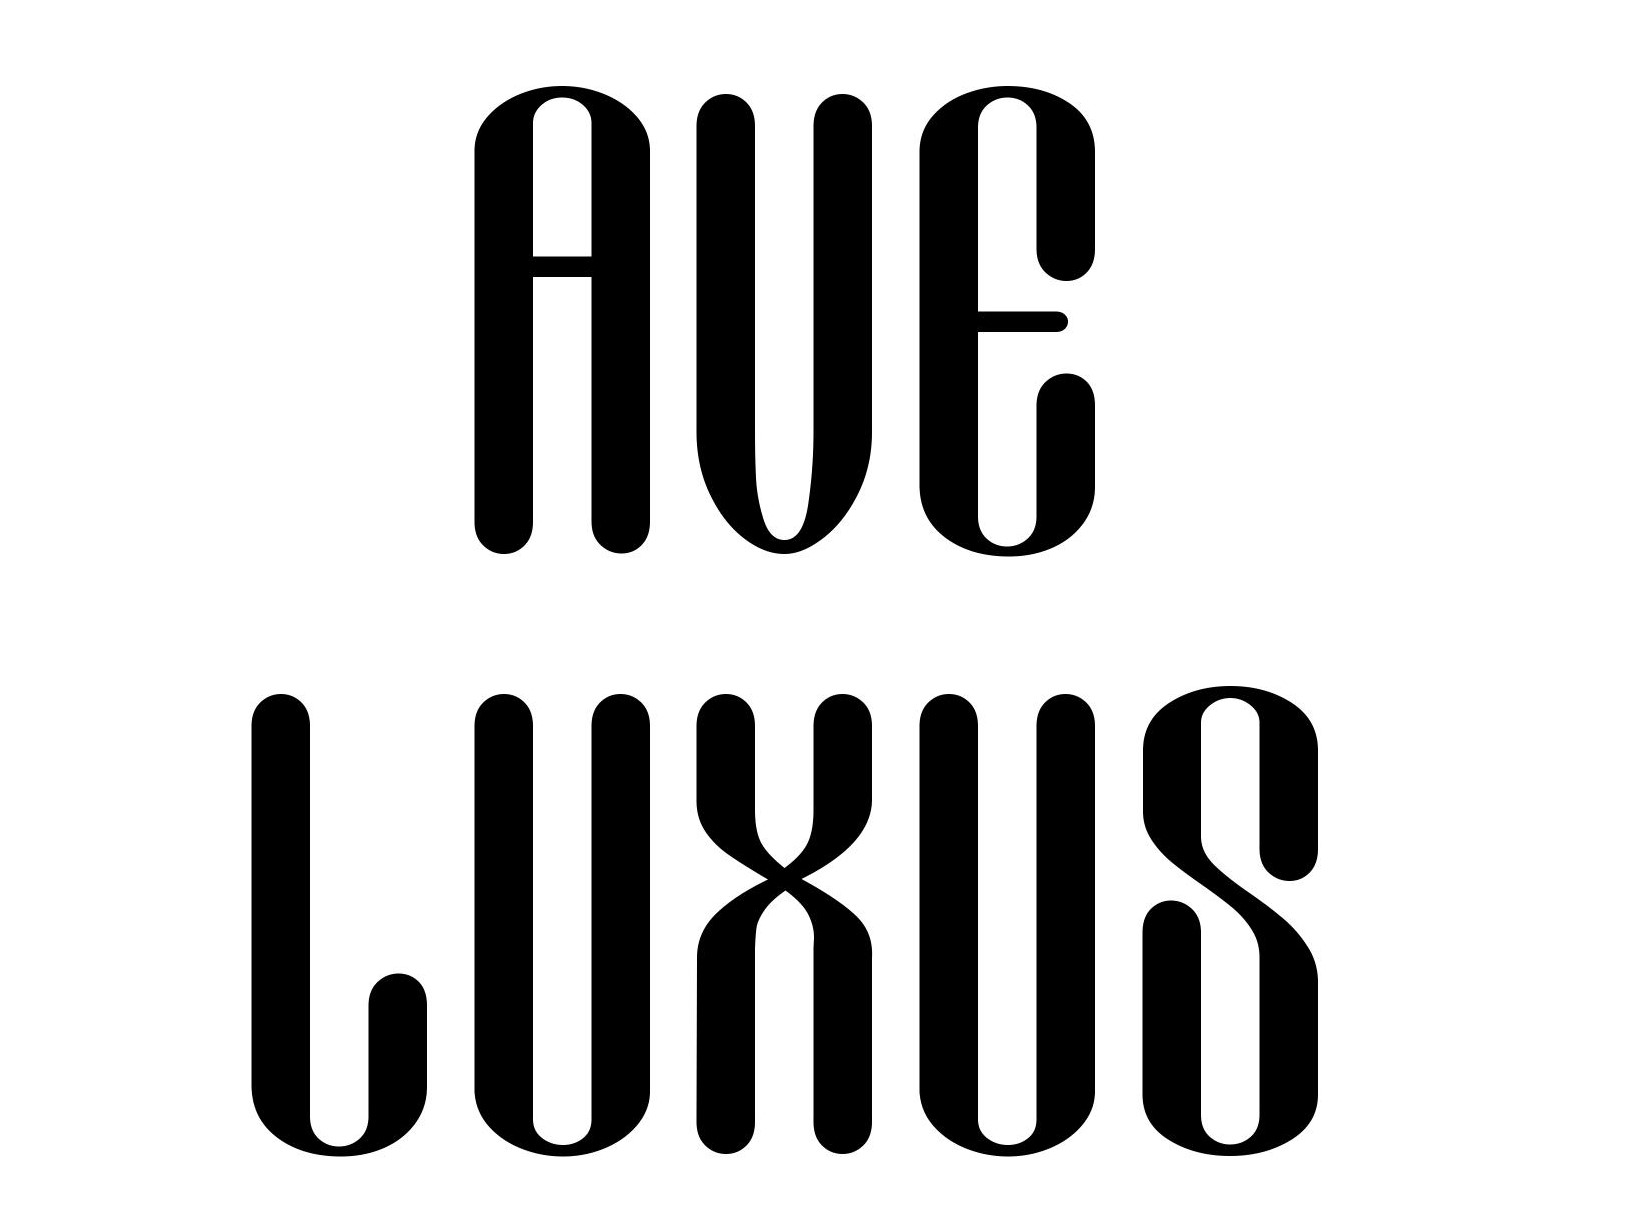 Ave Luxus